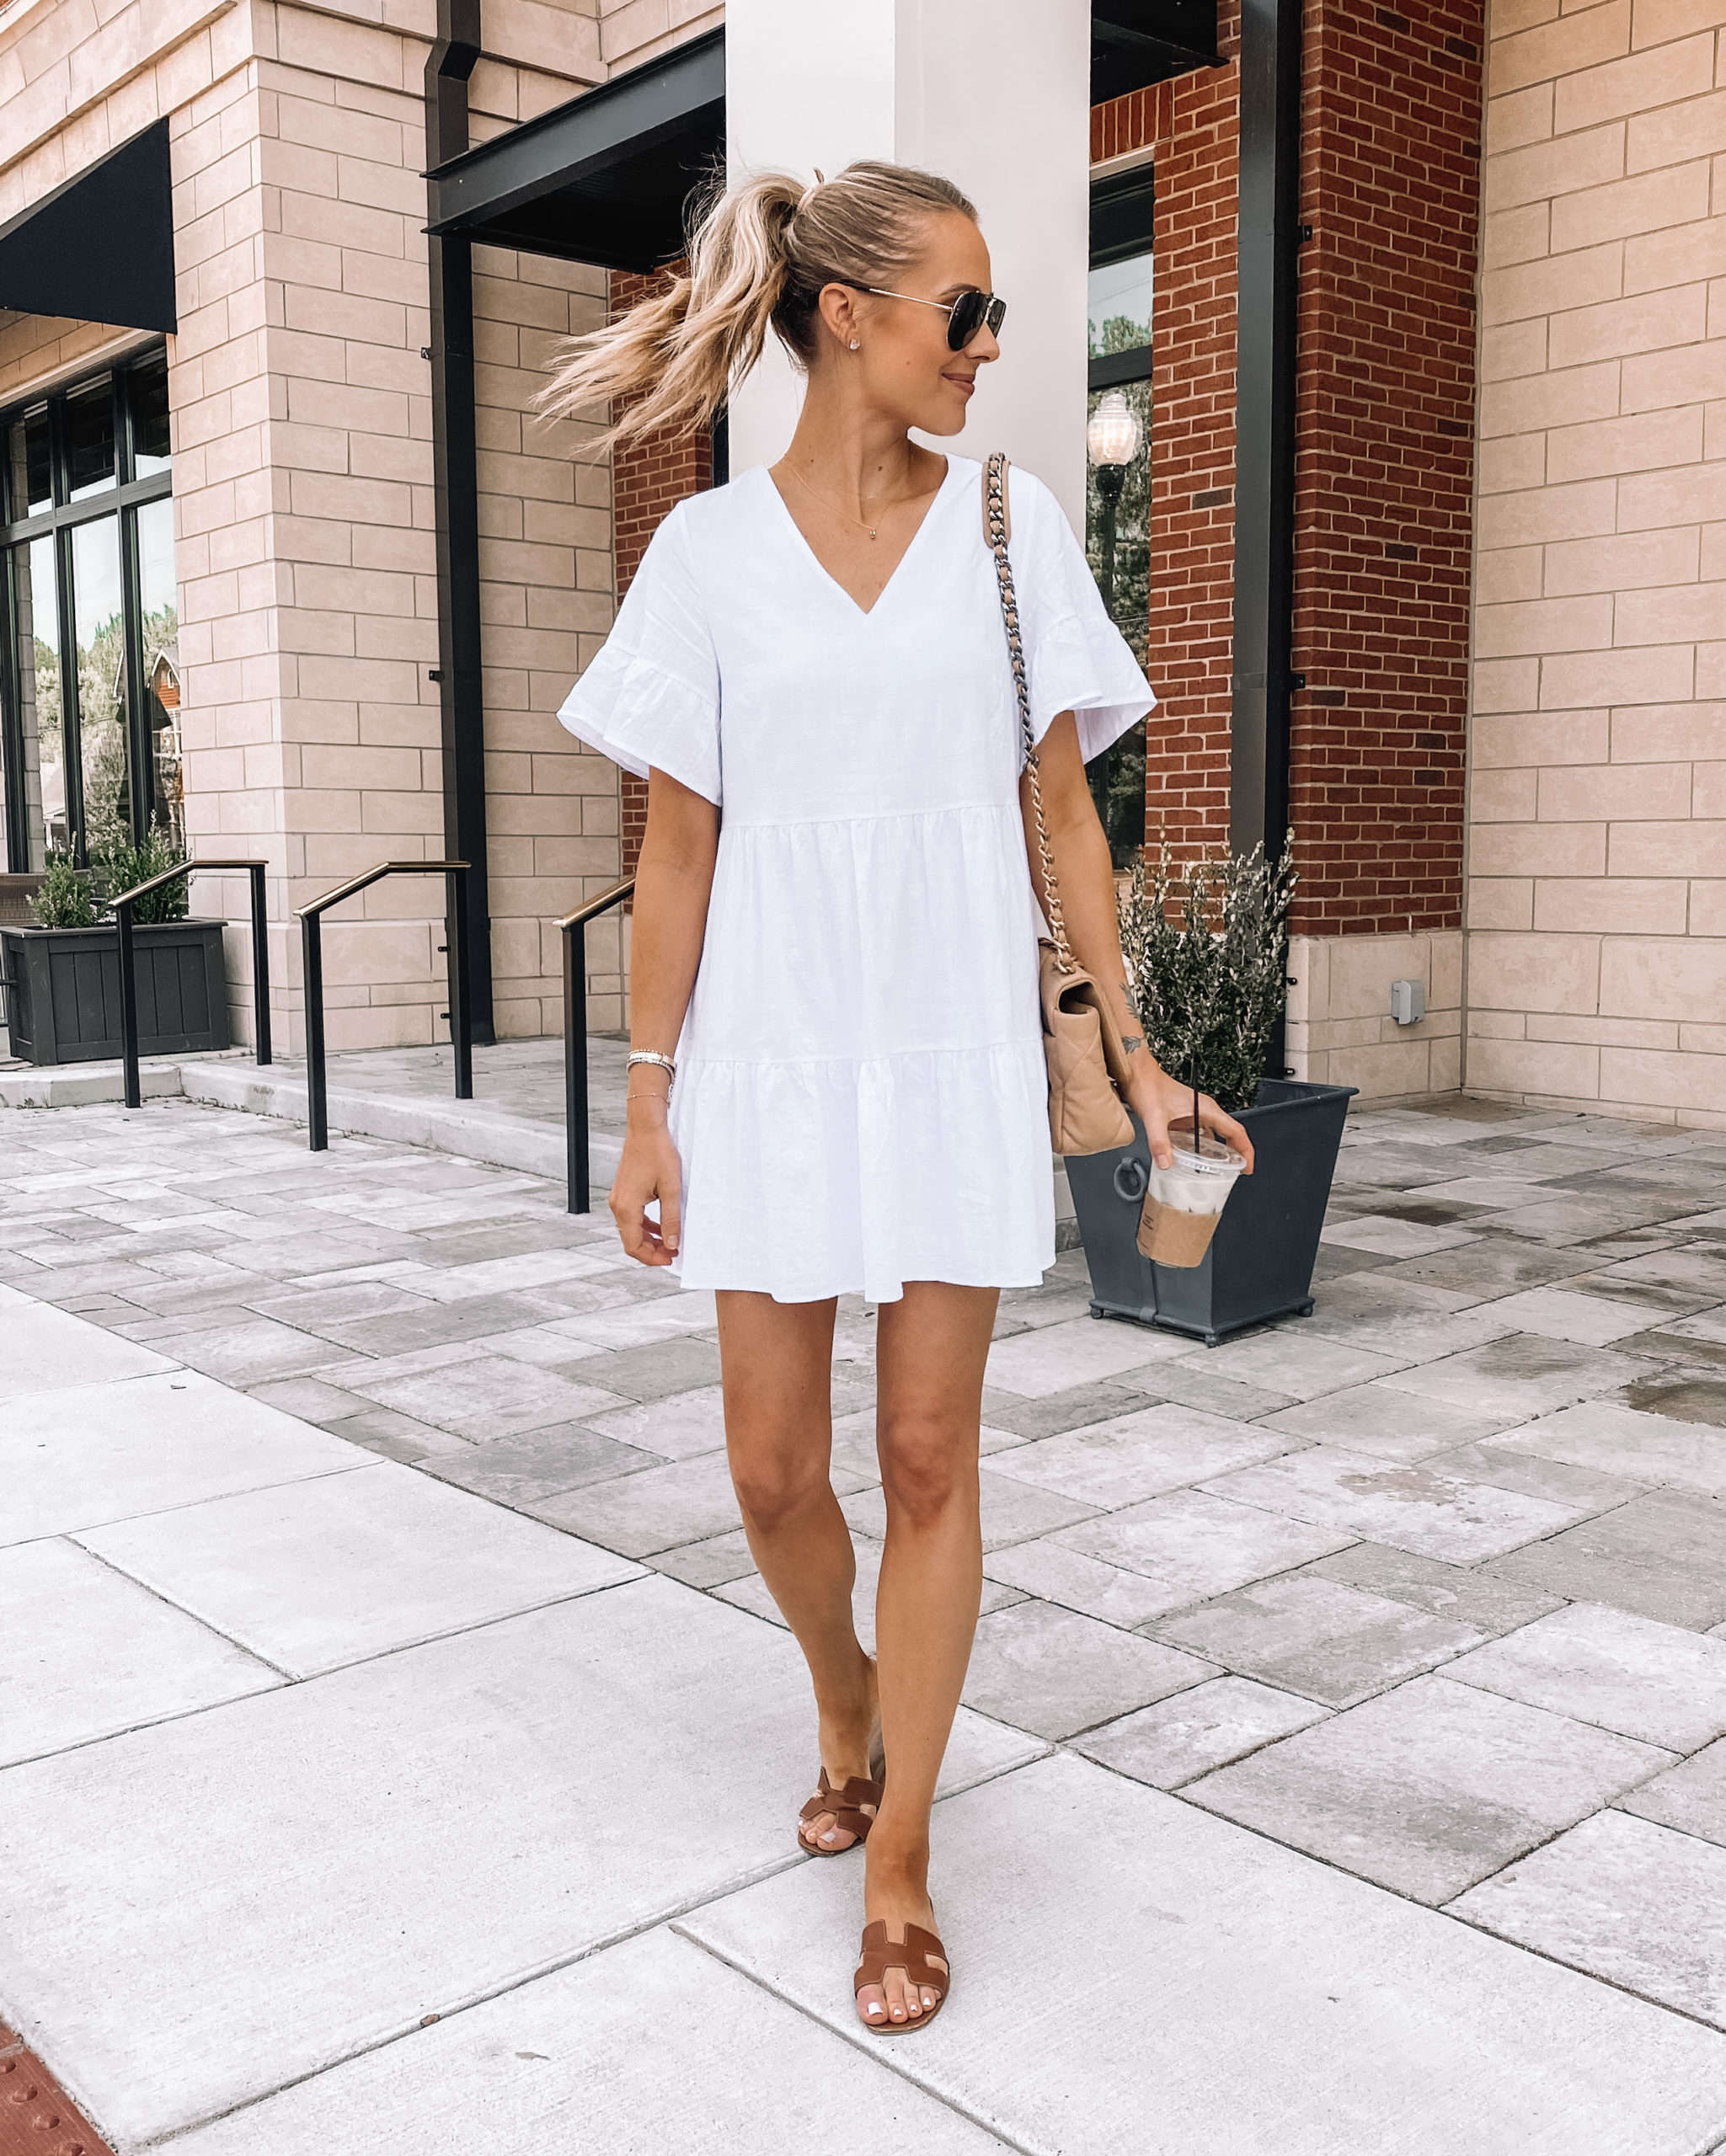 Fashion Jackson Wearing Amazon Fashion White Ruffle Dress Tan Sandals